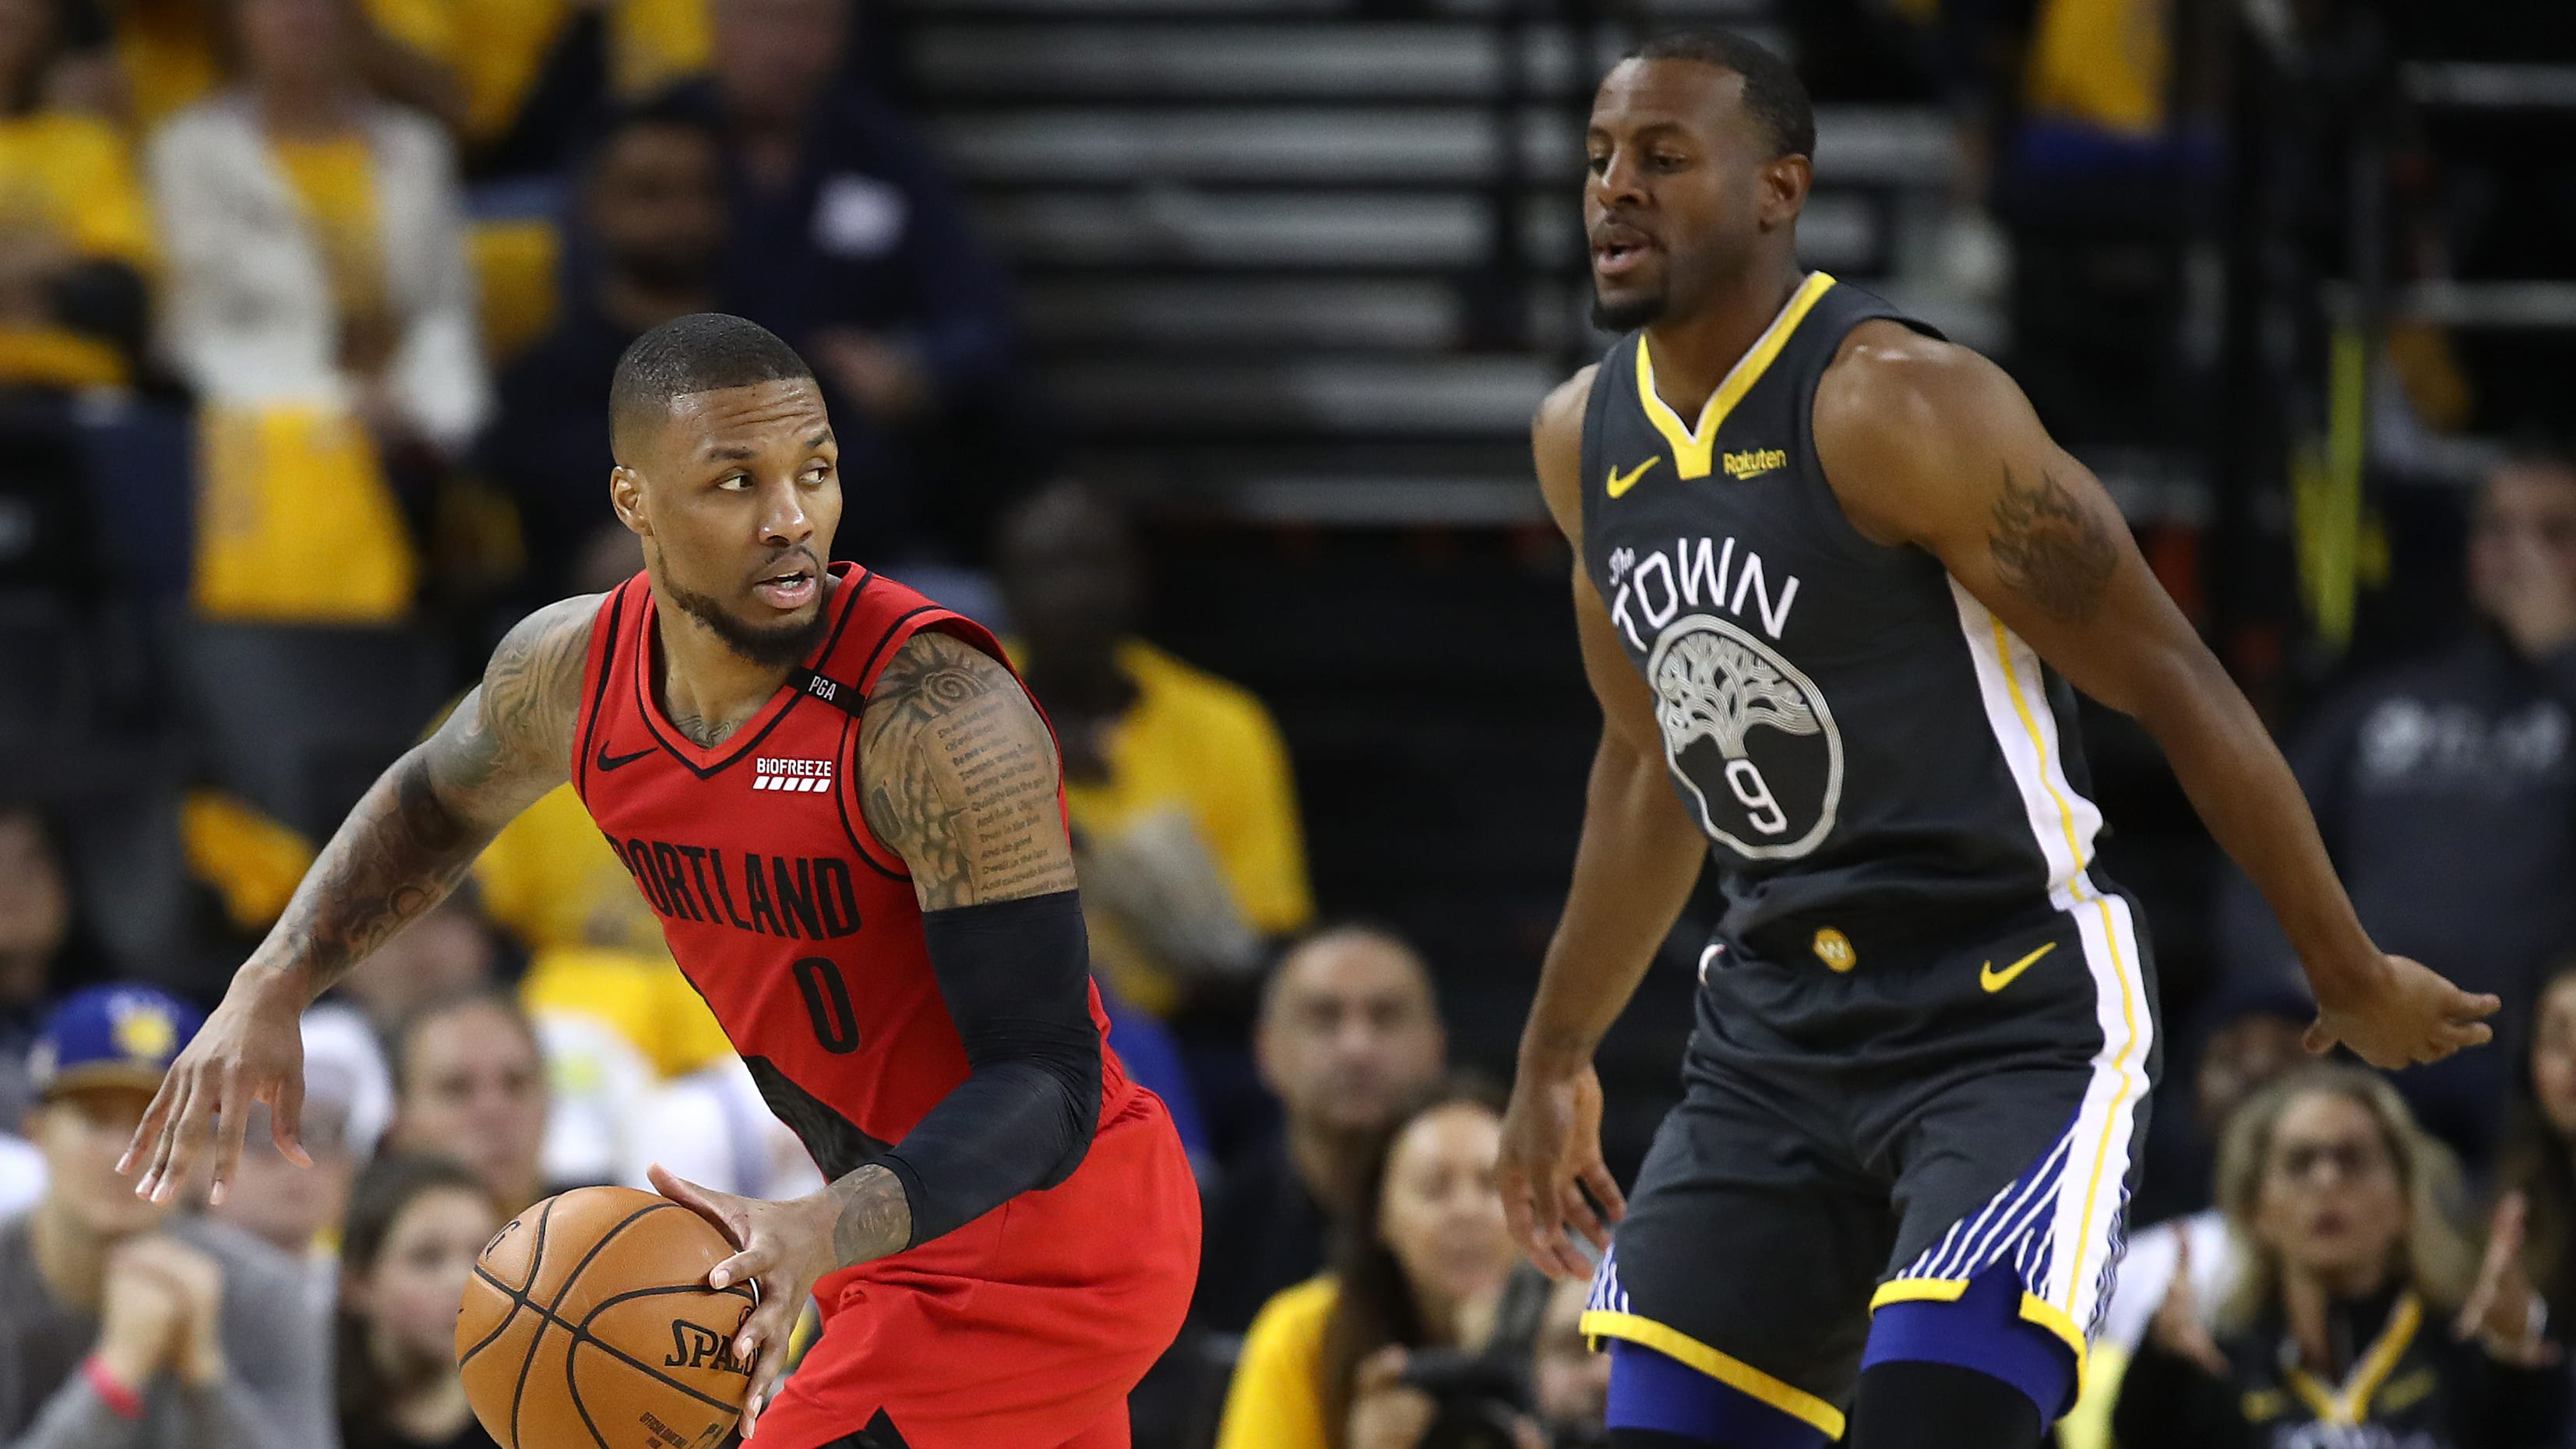 OAKLAND, CALIFORNIA - MAY 16: Damian Lillard #0 of the Portland Trail Blazers controls the ball against Andre Iguodala #9 of the Golden State Warriors in game two of the NBA Western Conference Finals at ORACLE Arena on May 16, 2019 in Oakland, California. NOTE TO USER: User expressly acknowledges and agrees that, by downloading and or using this photograph, User is consenting to the terms and conditions of the Getty Images License Agreement. (Photo by Ezra Shaw/Getty Images)